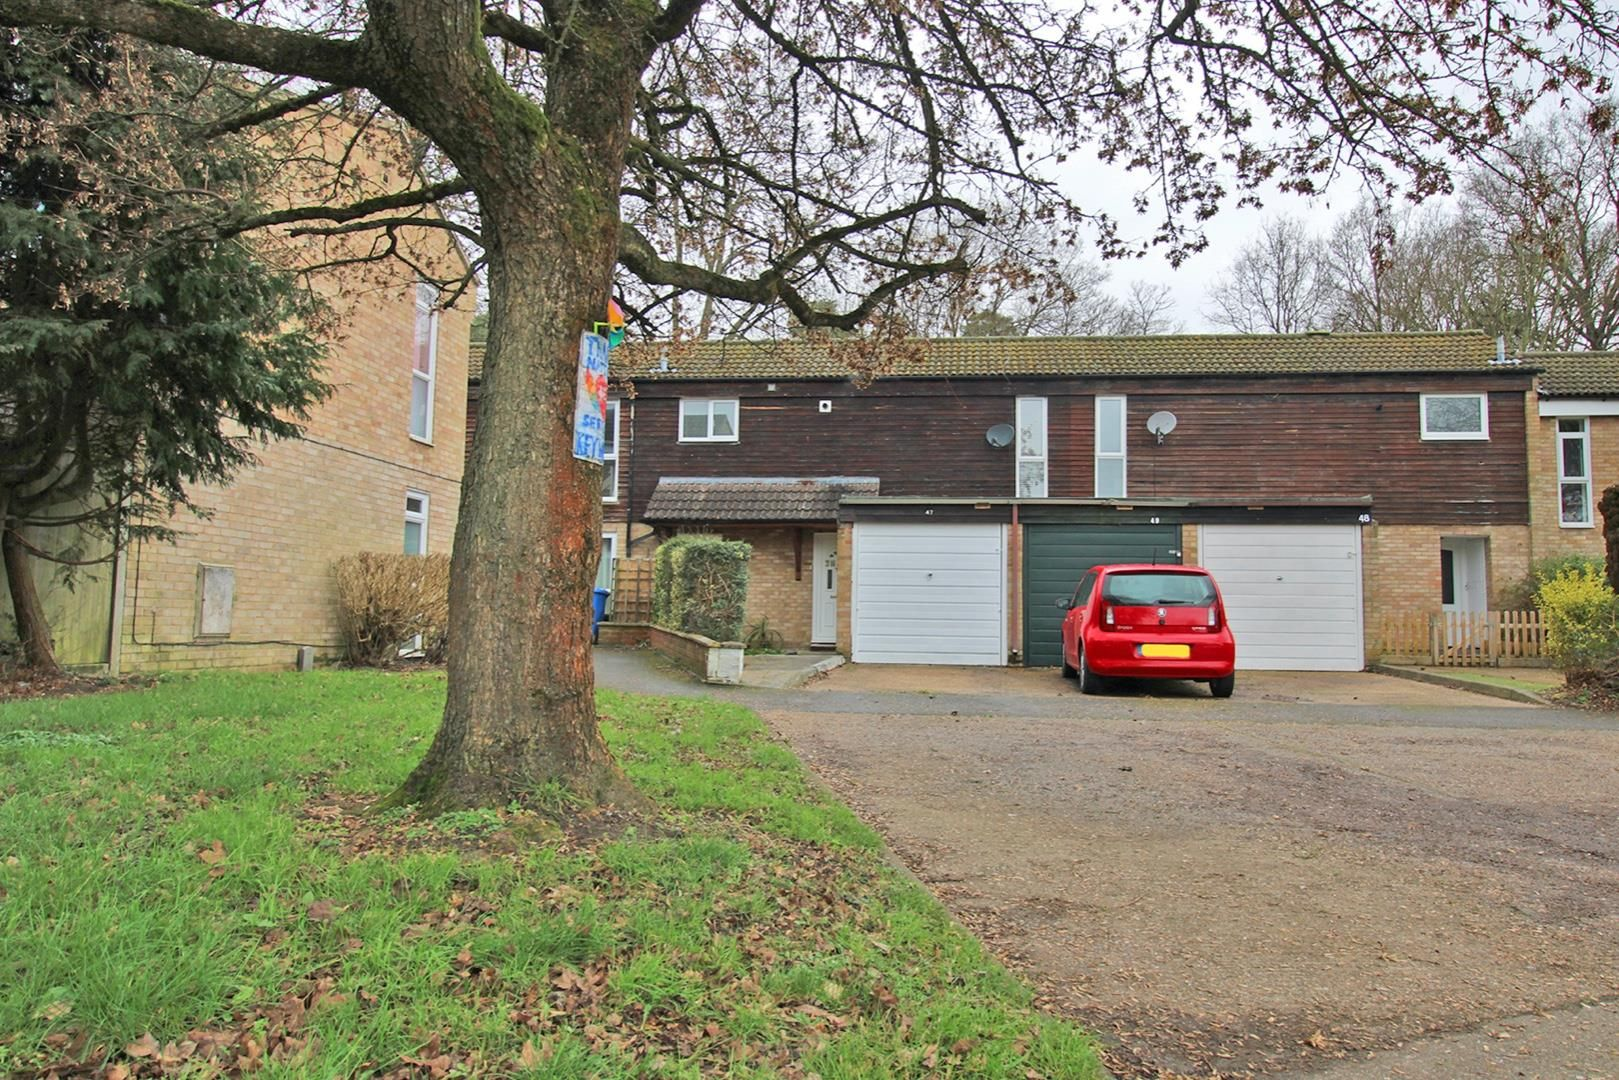 3 bed house for sale in Hanworth, RG12